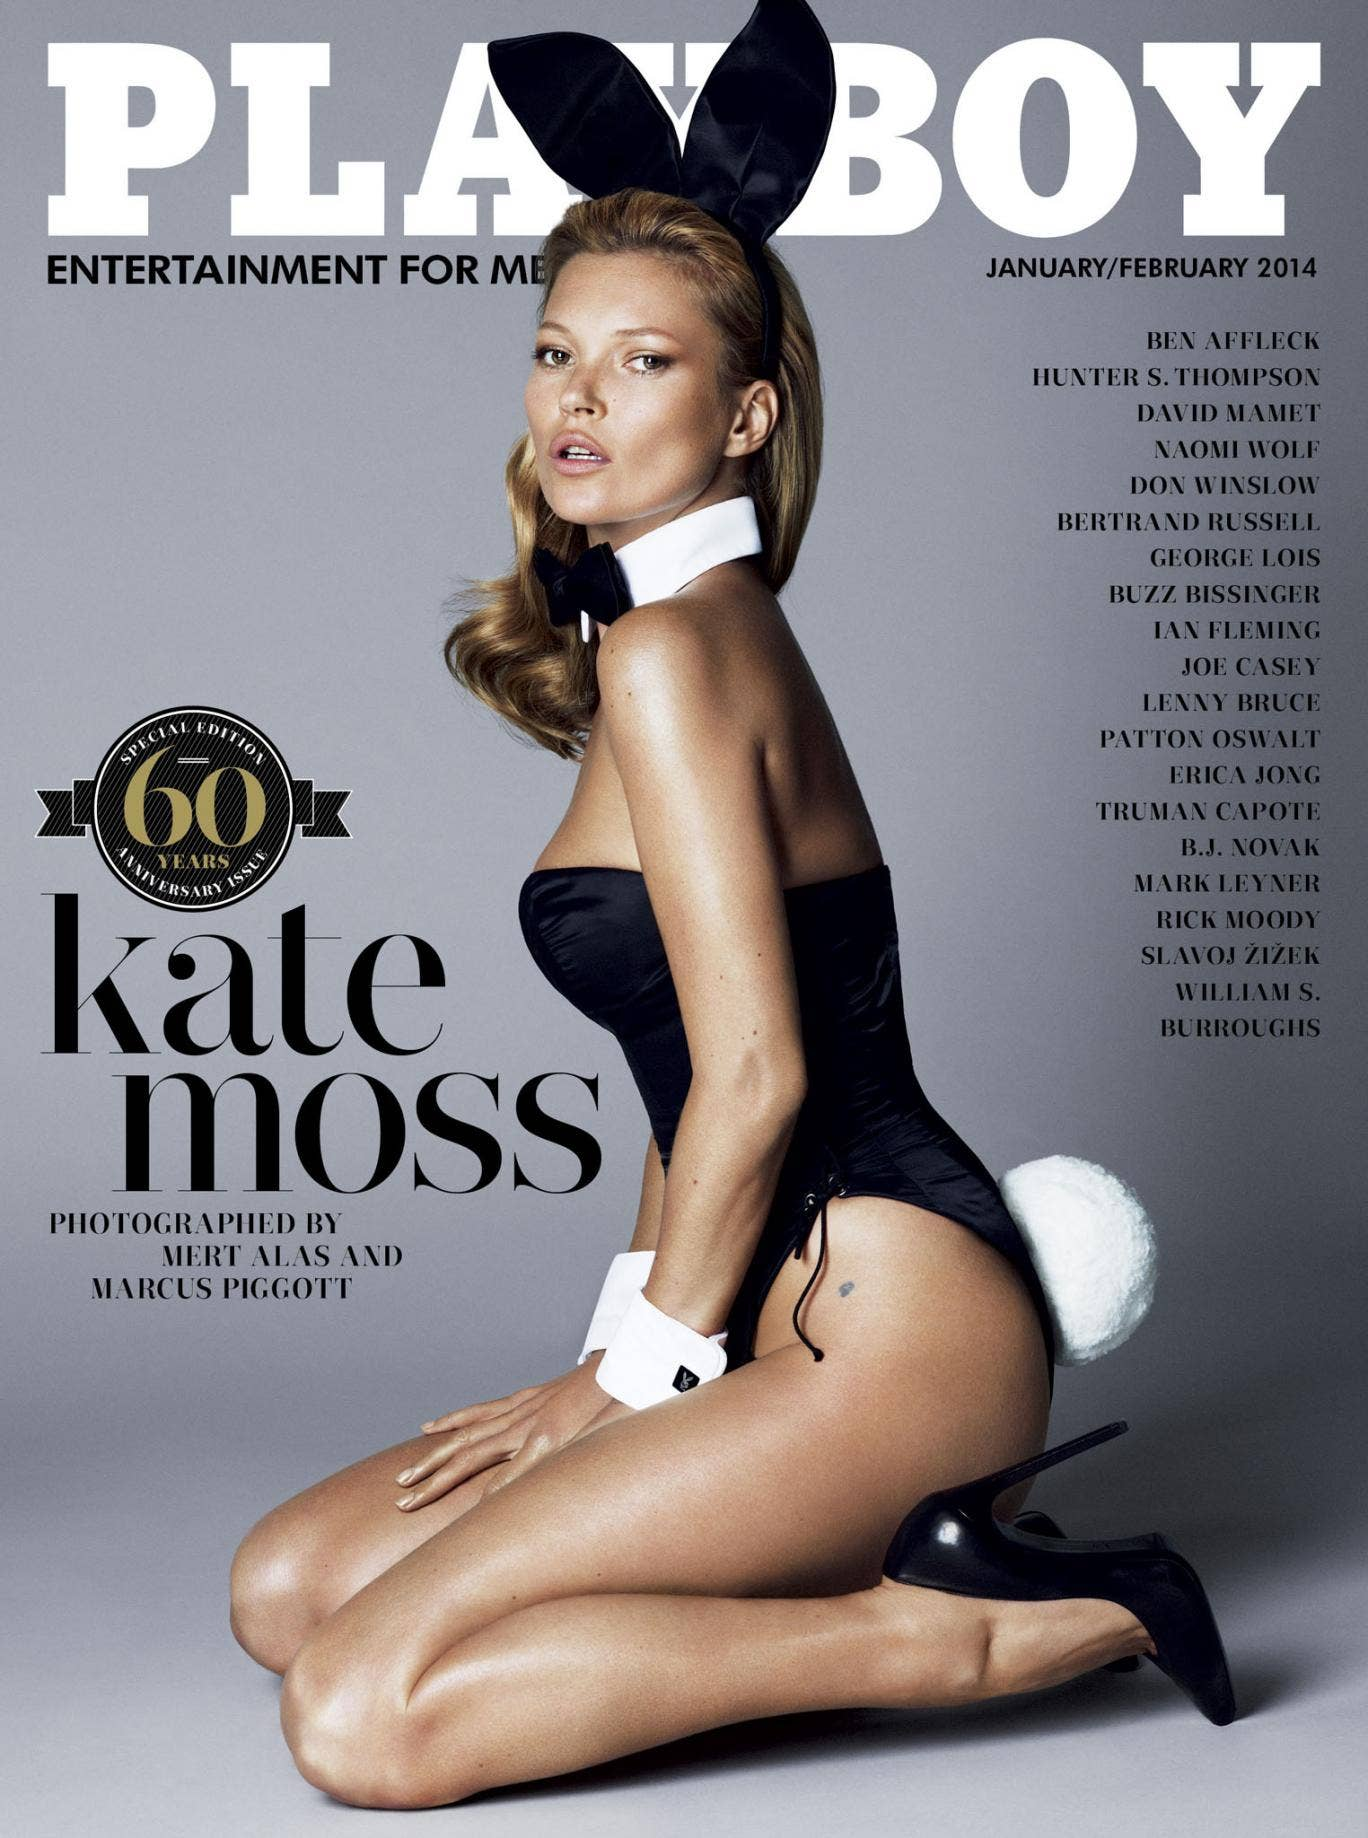 Kate Moss' long-awaited Playboy 60th Anniversary cover was unveiled online today